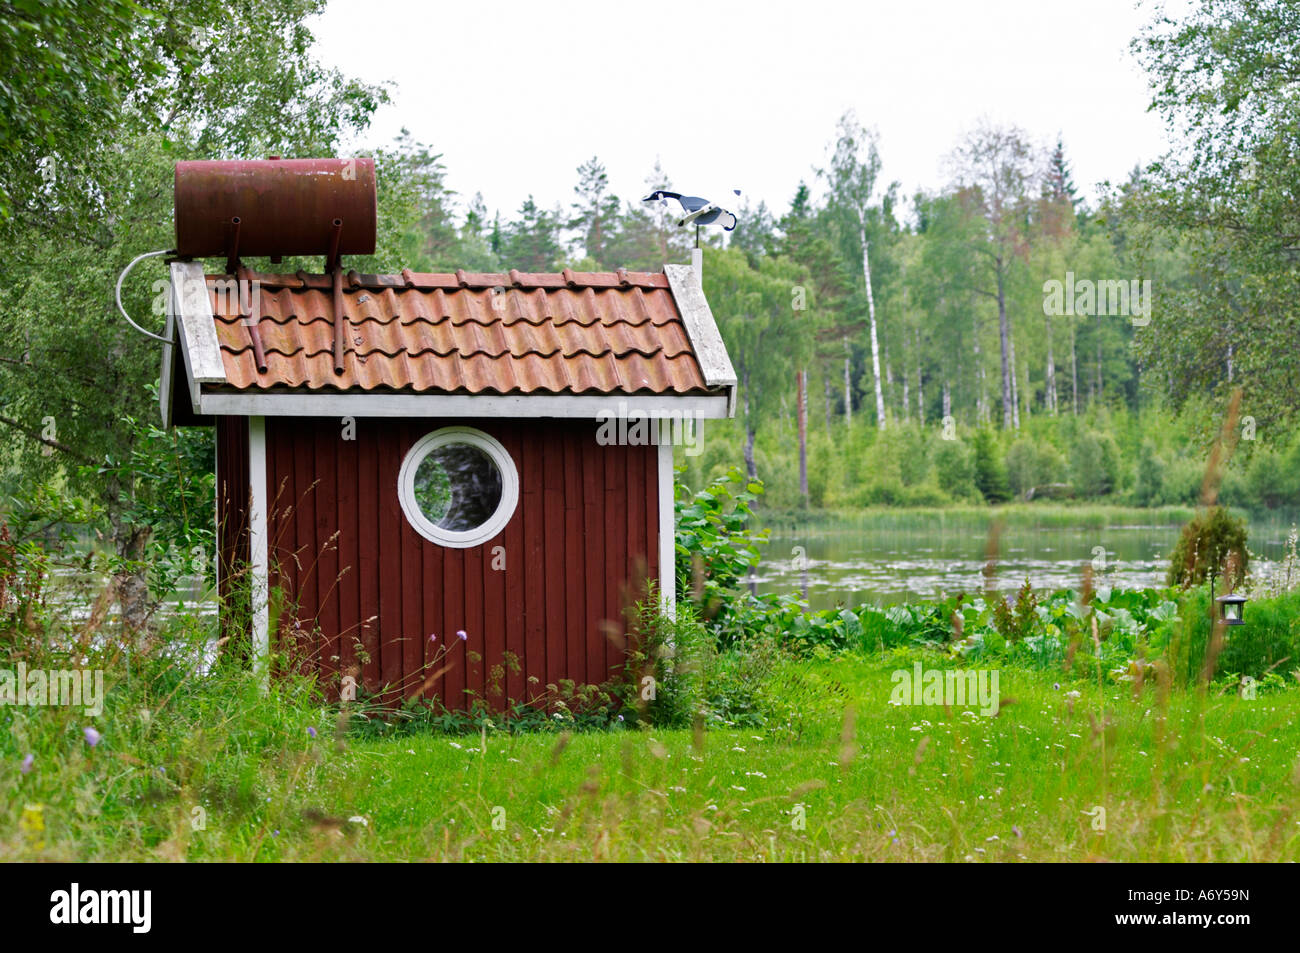 Swedish Style House traditional style swedish wooden painted house. a small water tank